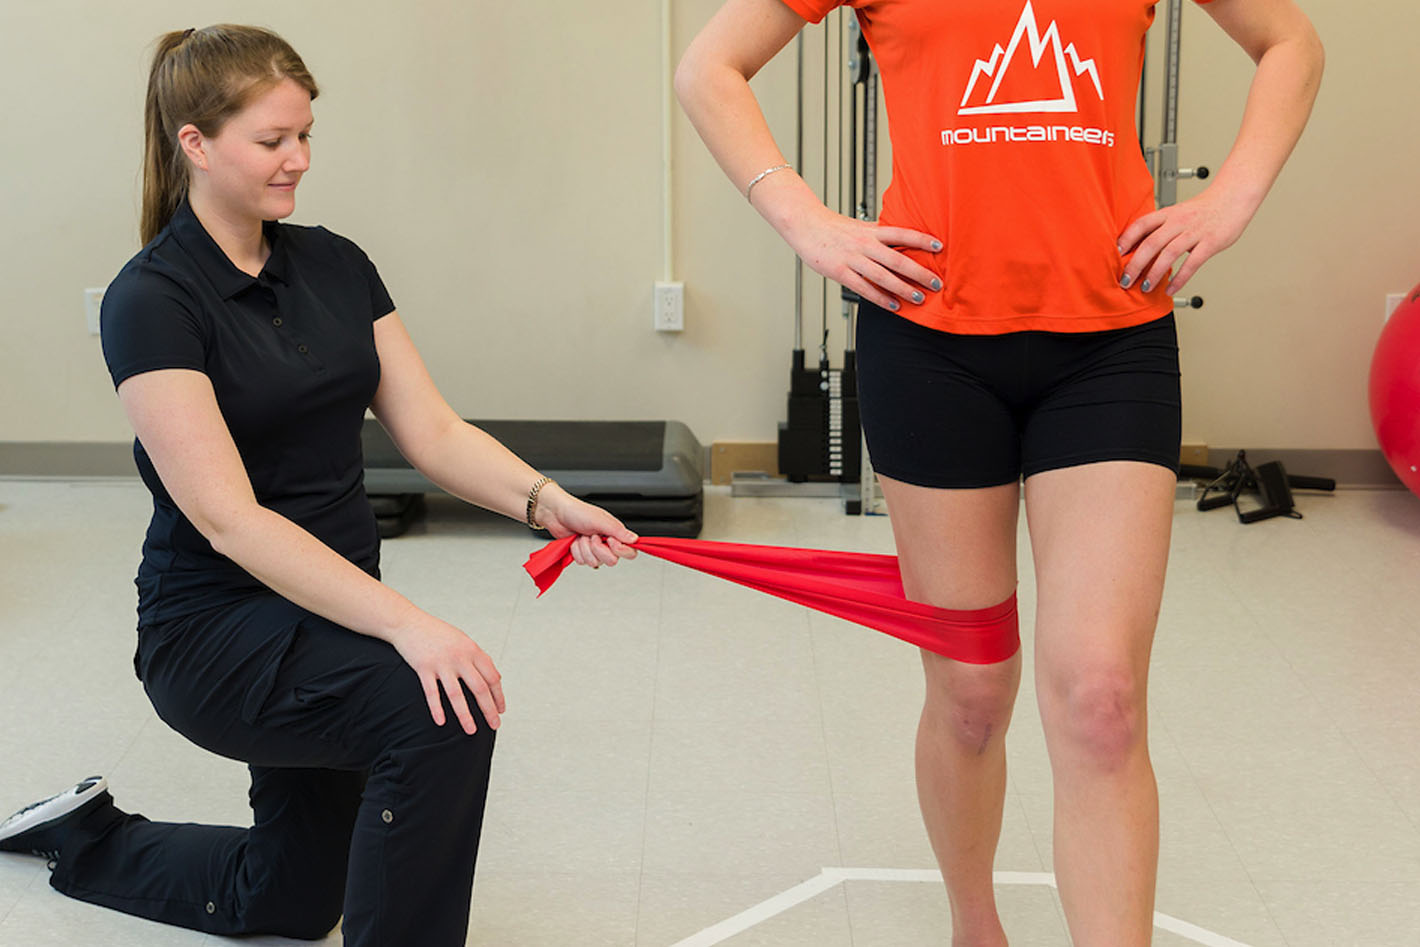 Physiotherapist providing resistance on leg stretch for physiotherapy